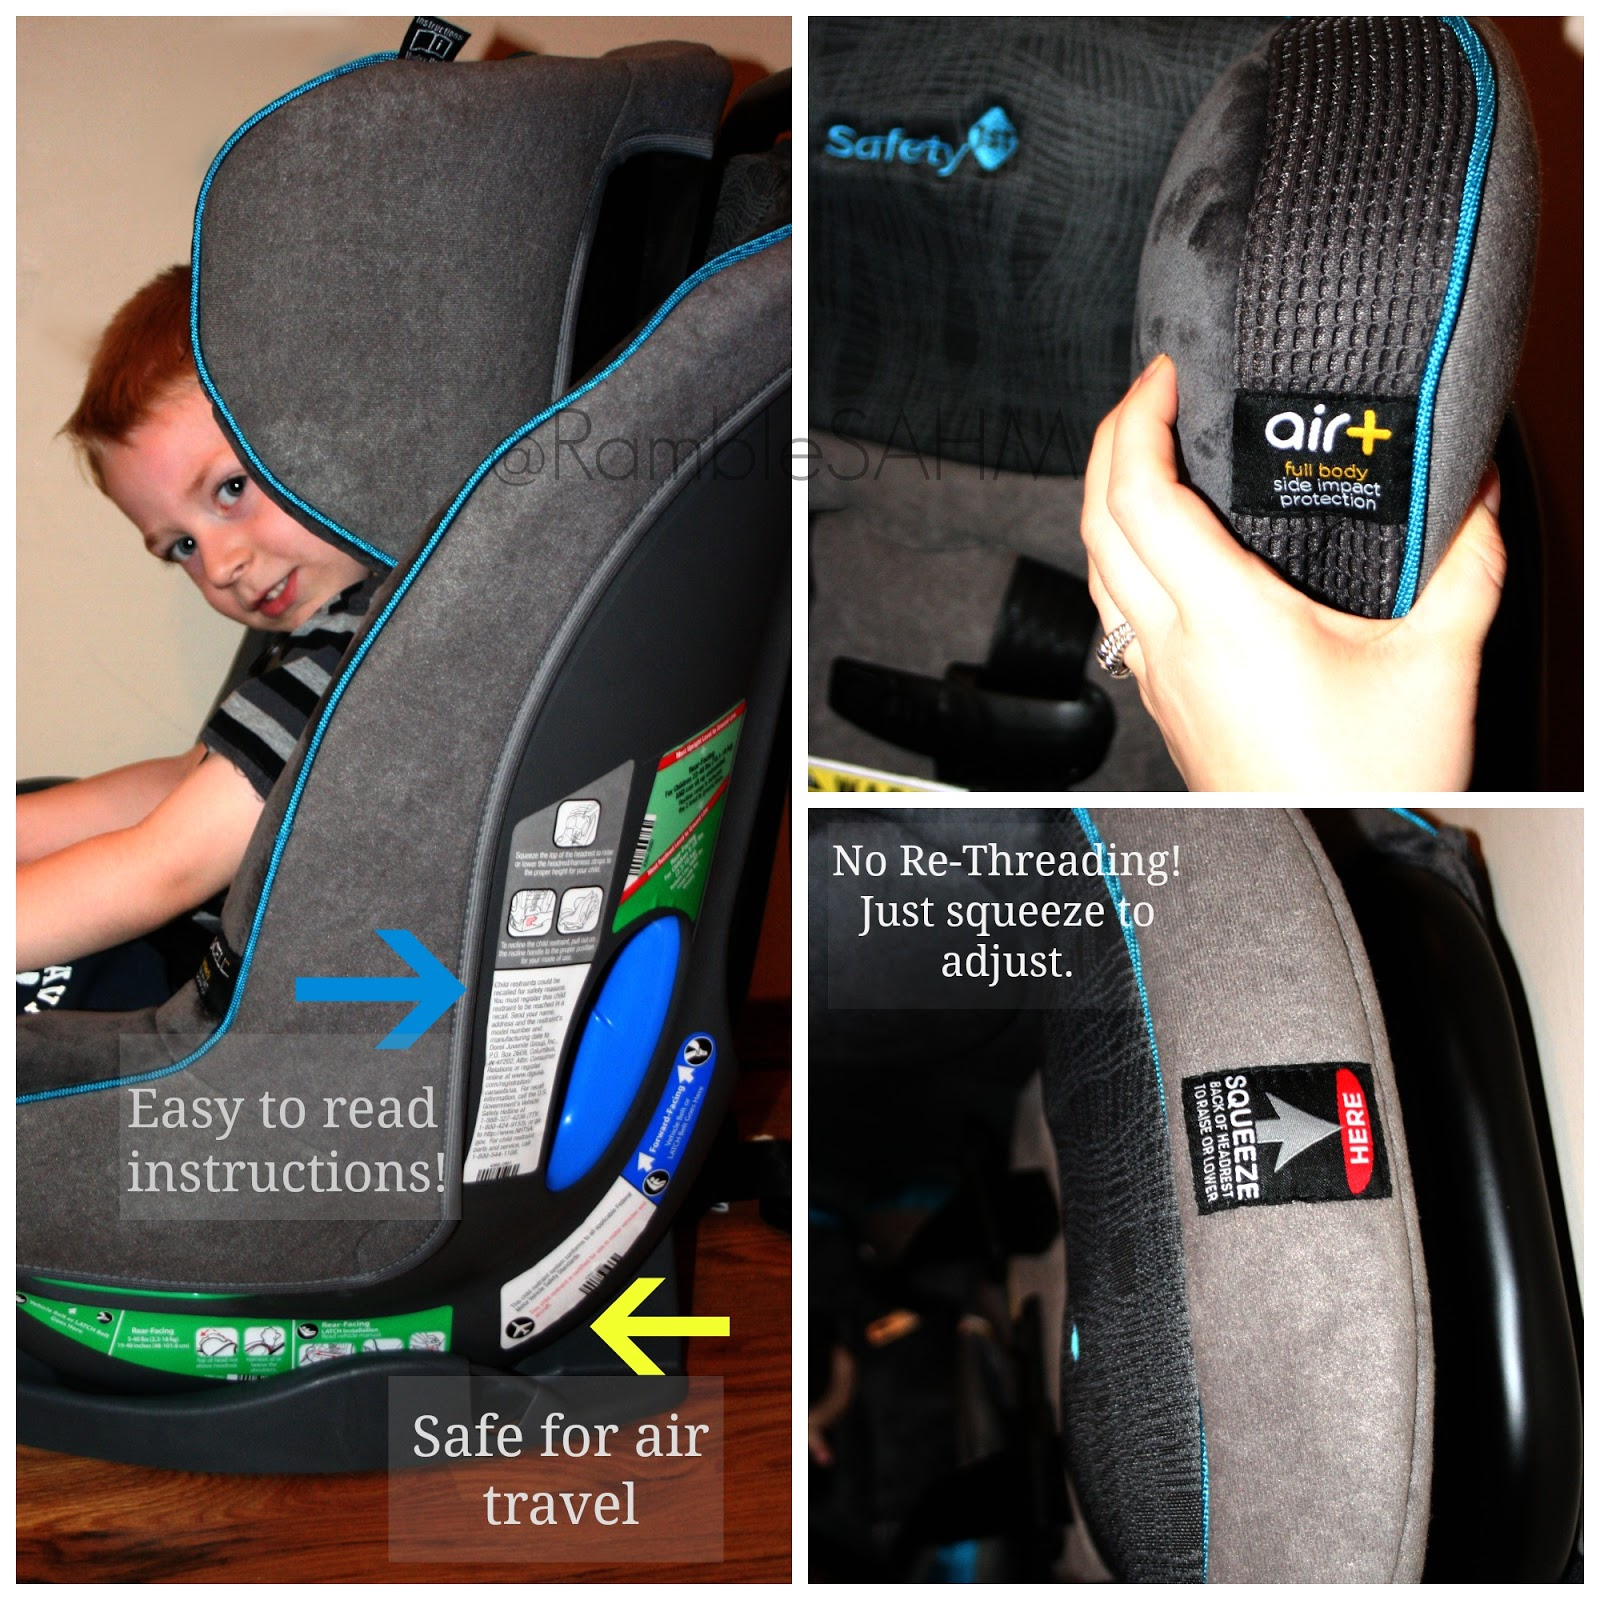 Car Seat Safety Is Important And Can Save A Child S Life But Only If It Done Correctly 1st Has Made This Very Easy To Keep Your